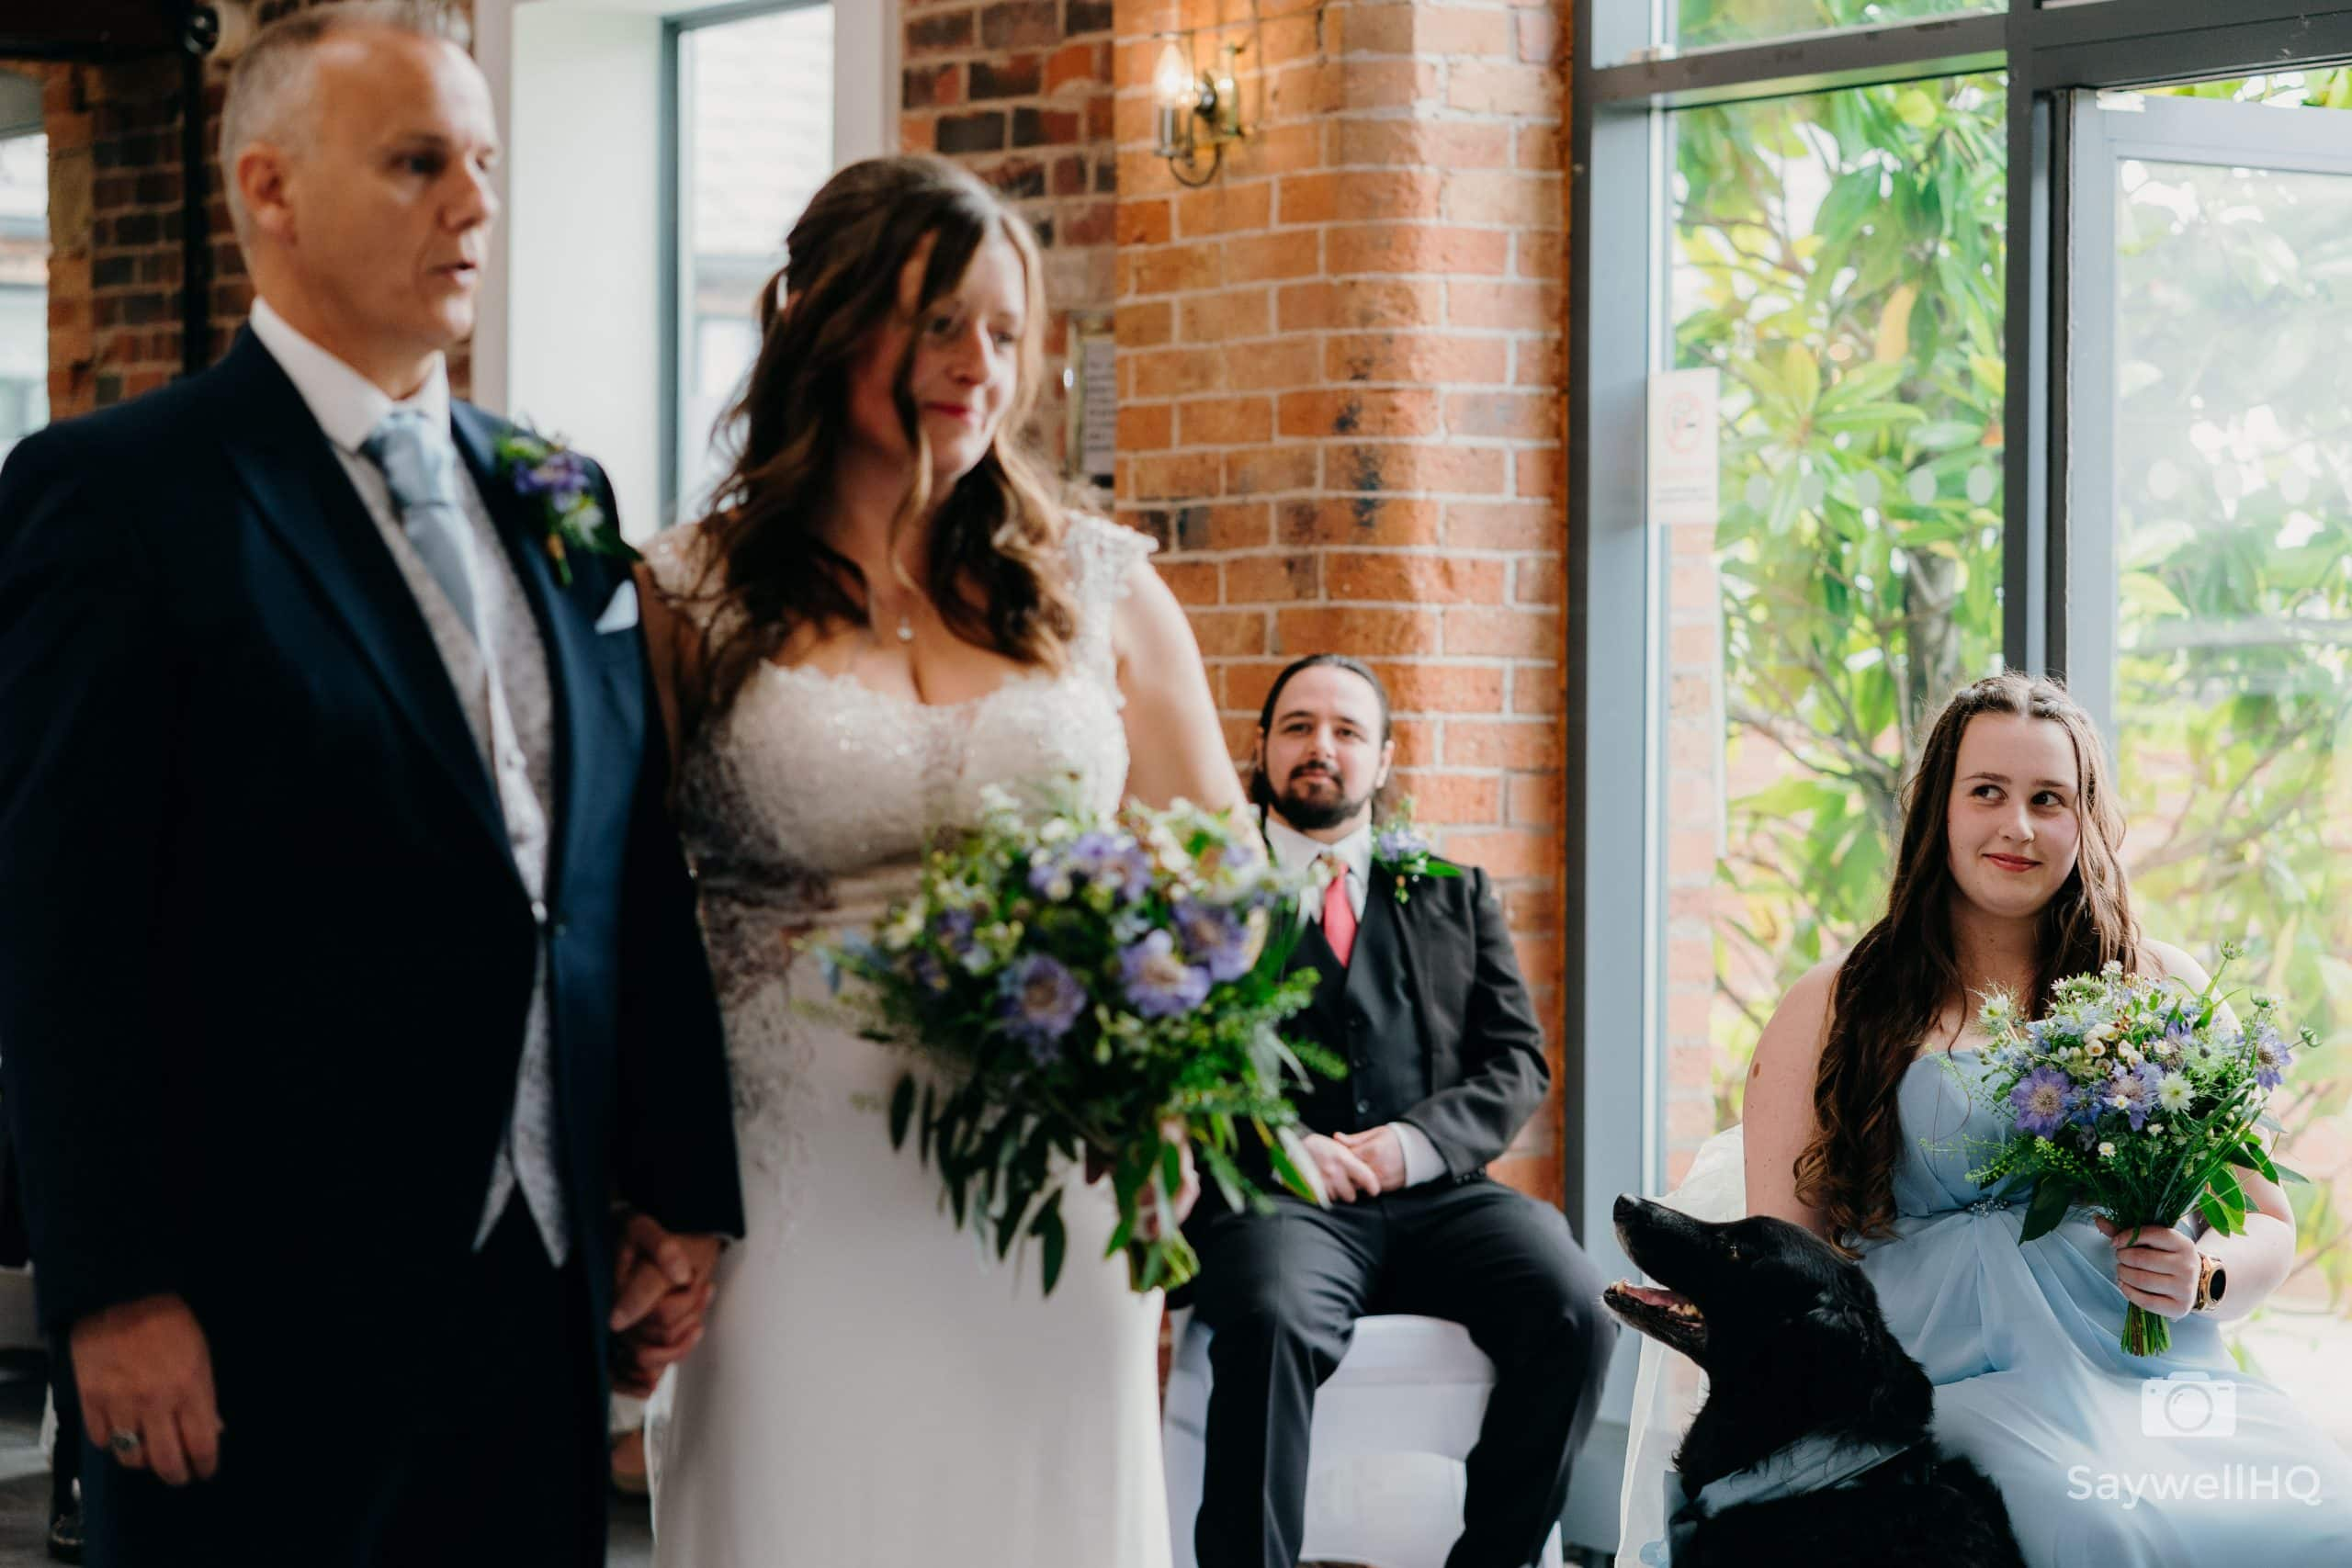 daughter of the bride looking on as her mum gets married at Goosedale in Nottingham during a COVID wedding